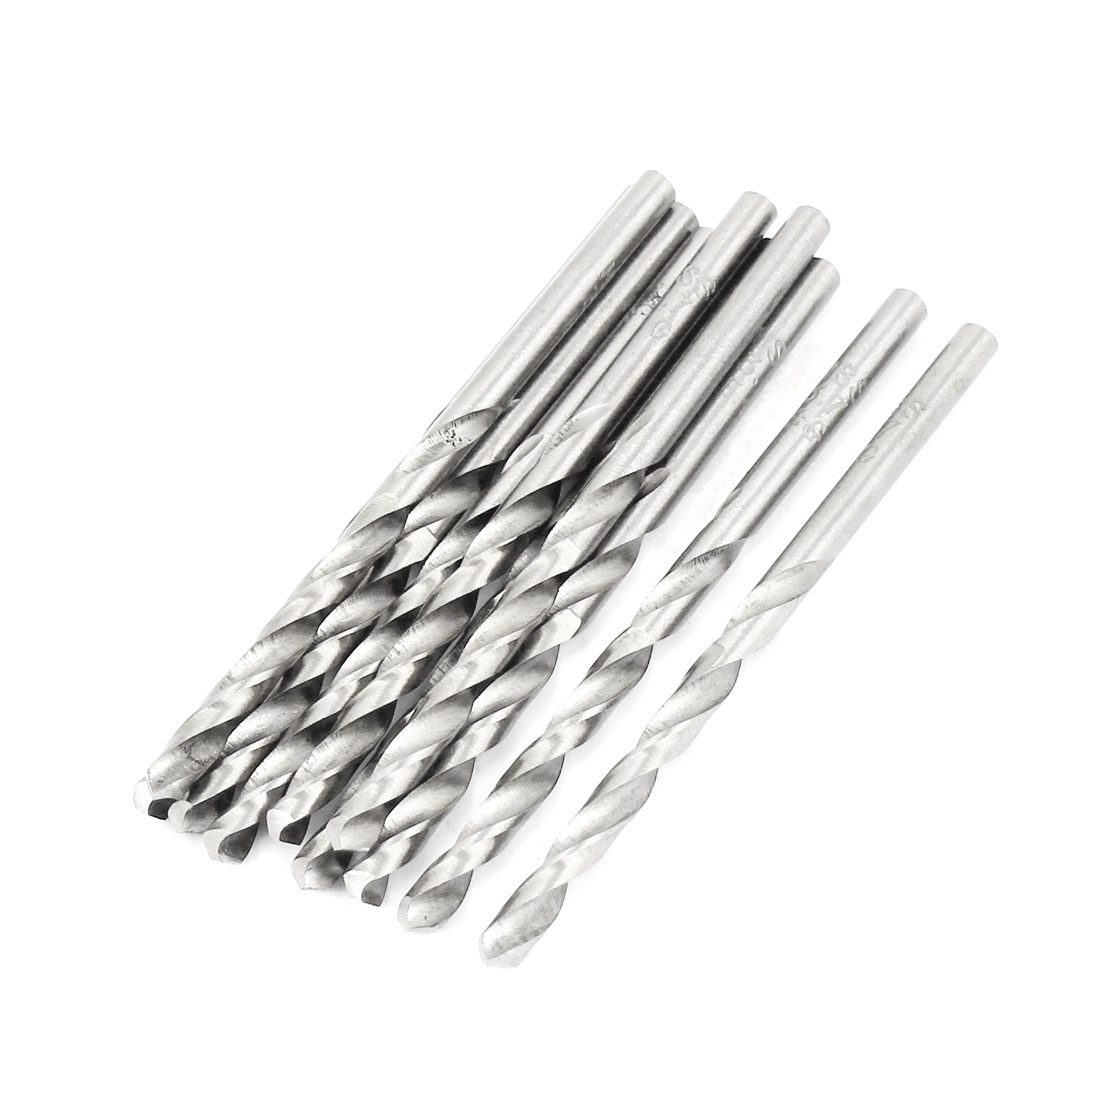 10 Pcs 47mm Length Flute 3.6mm Dia Metal Marble HSS Twist Drilling Drill Bit